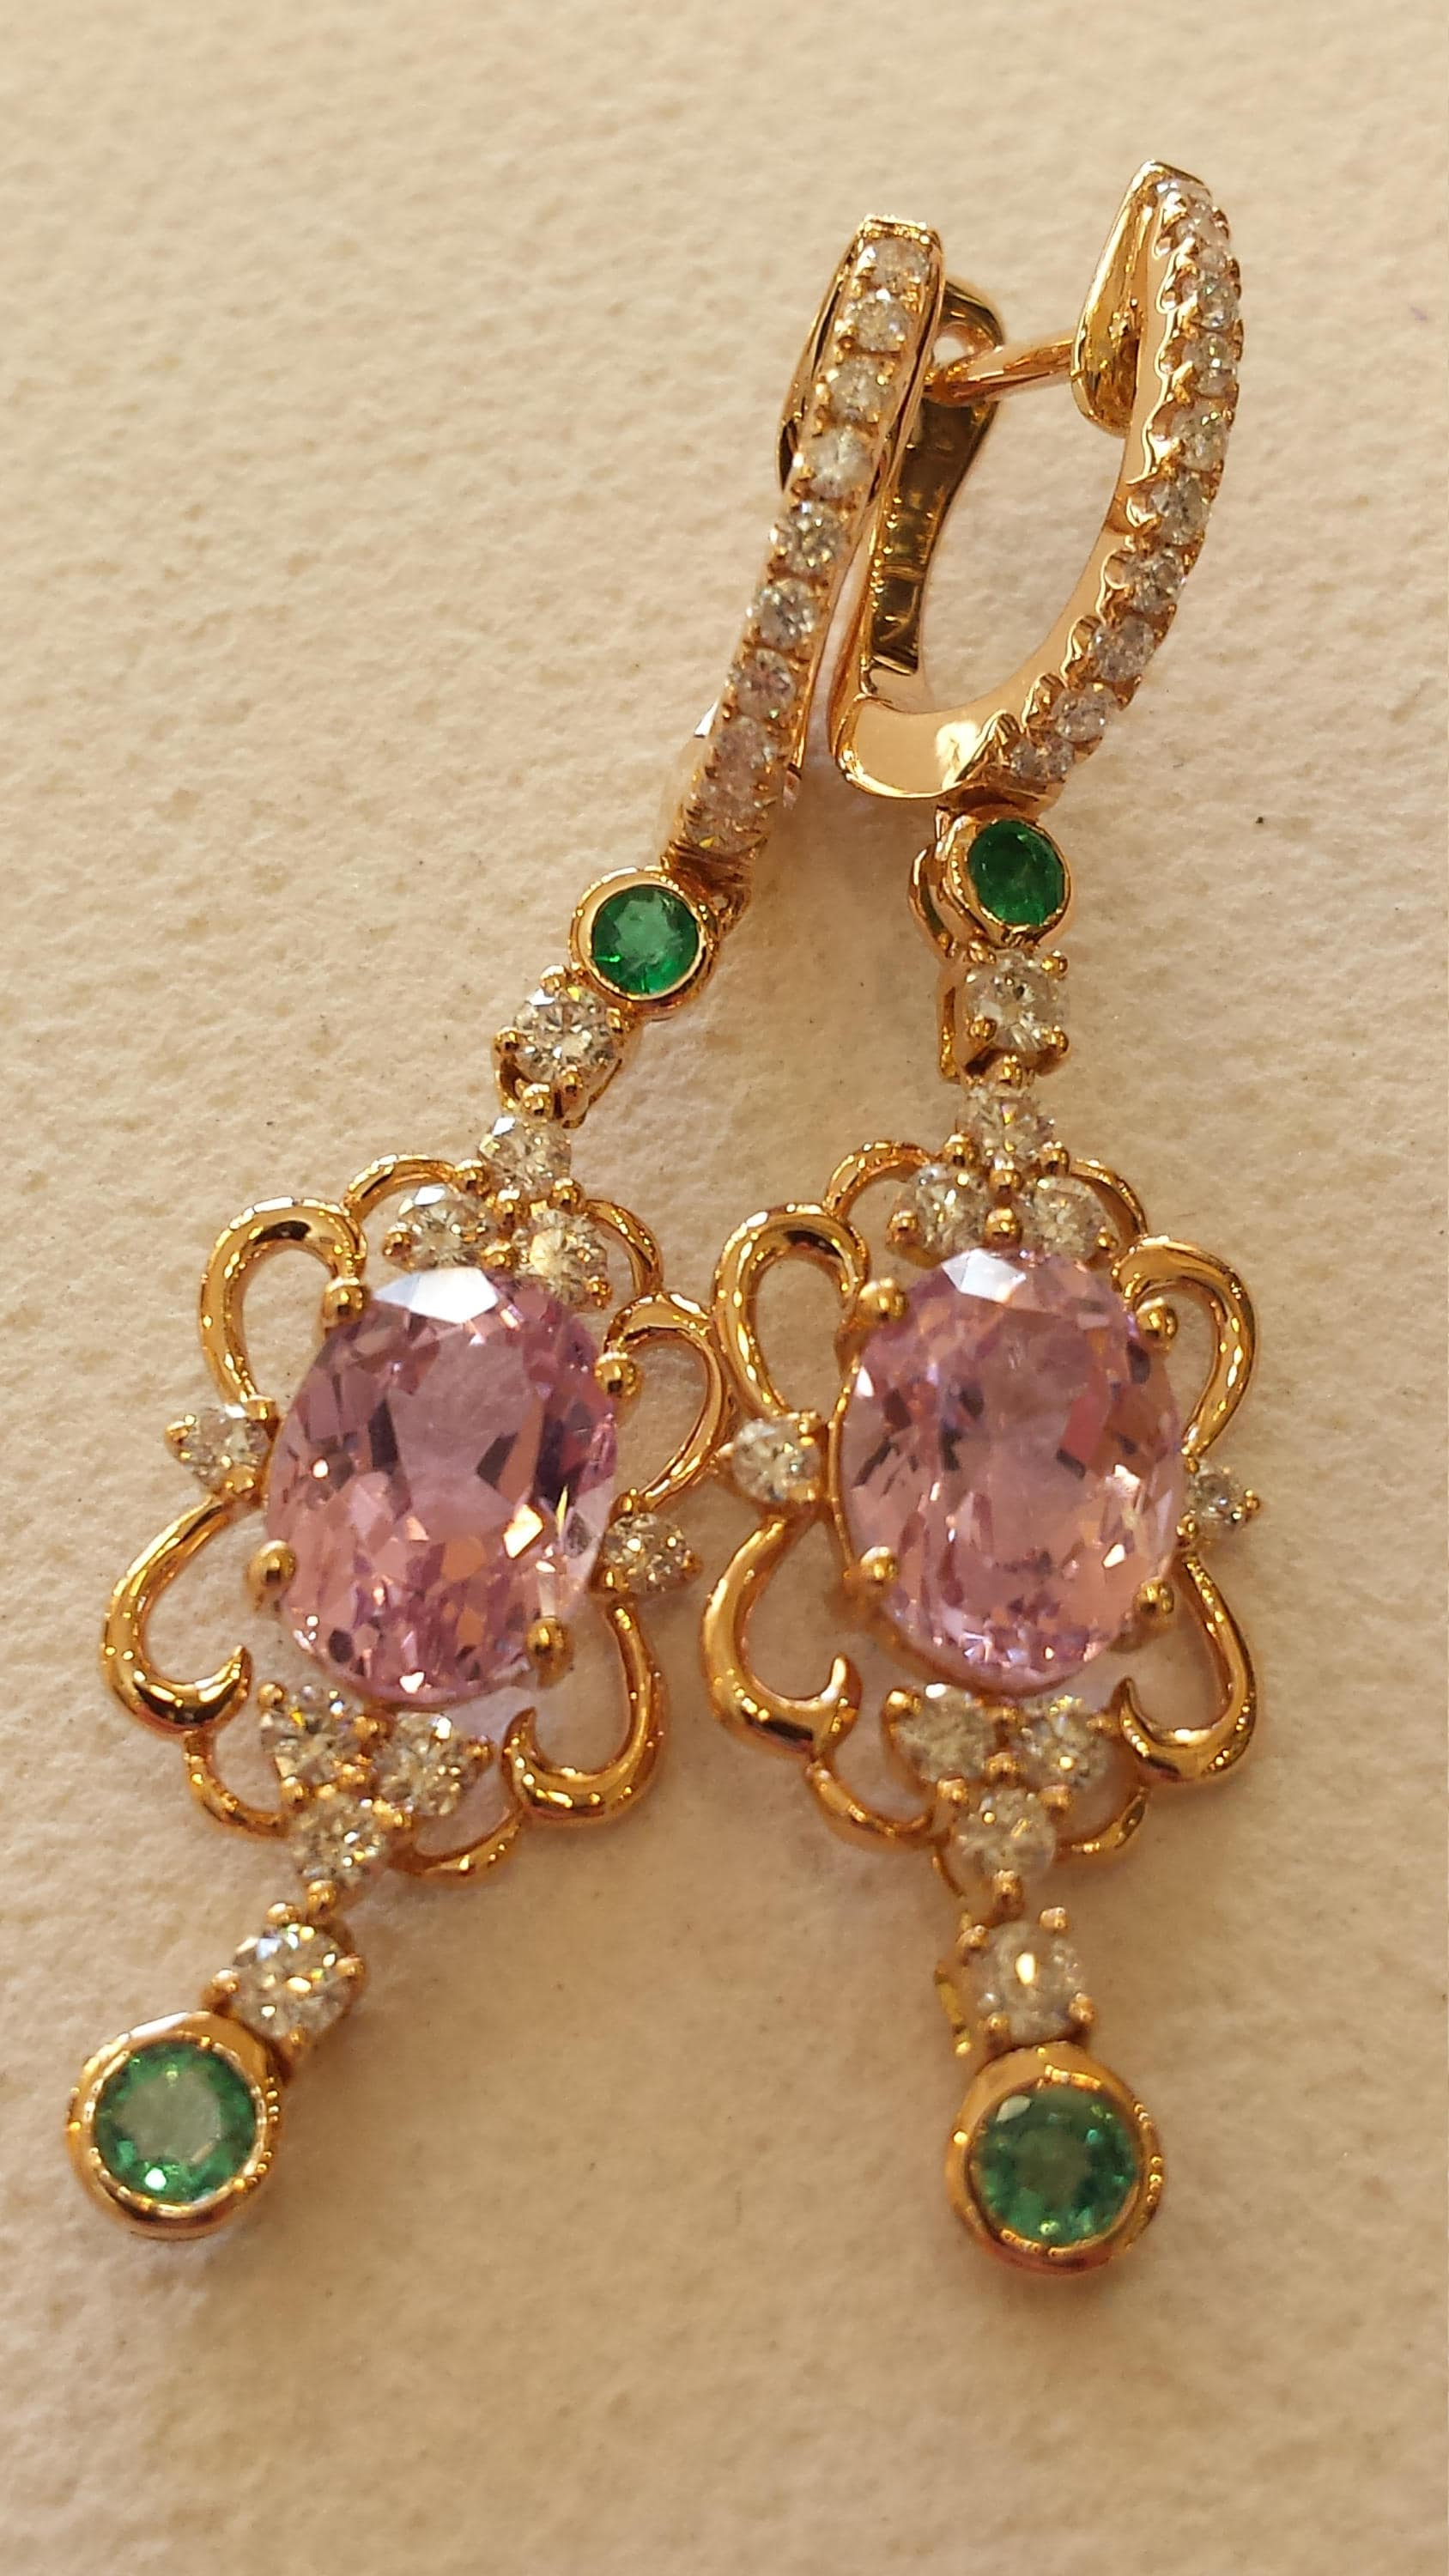 pin real kunzite co earrings cushion diamonds jewellery with